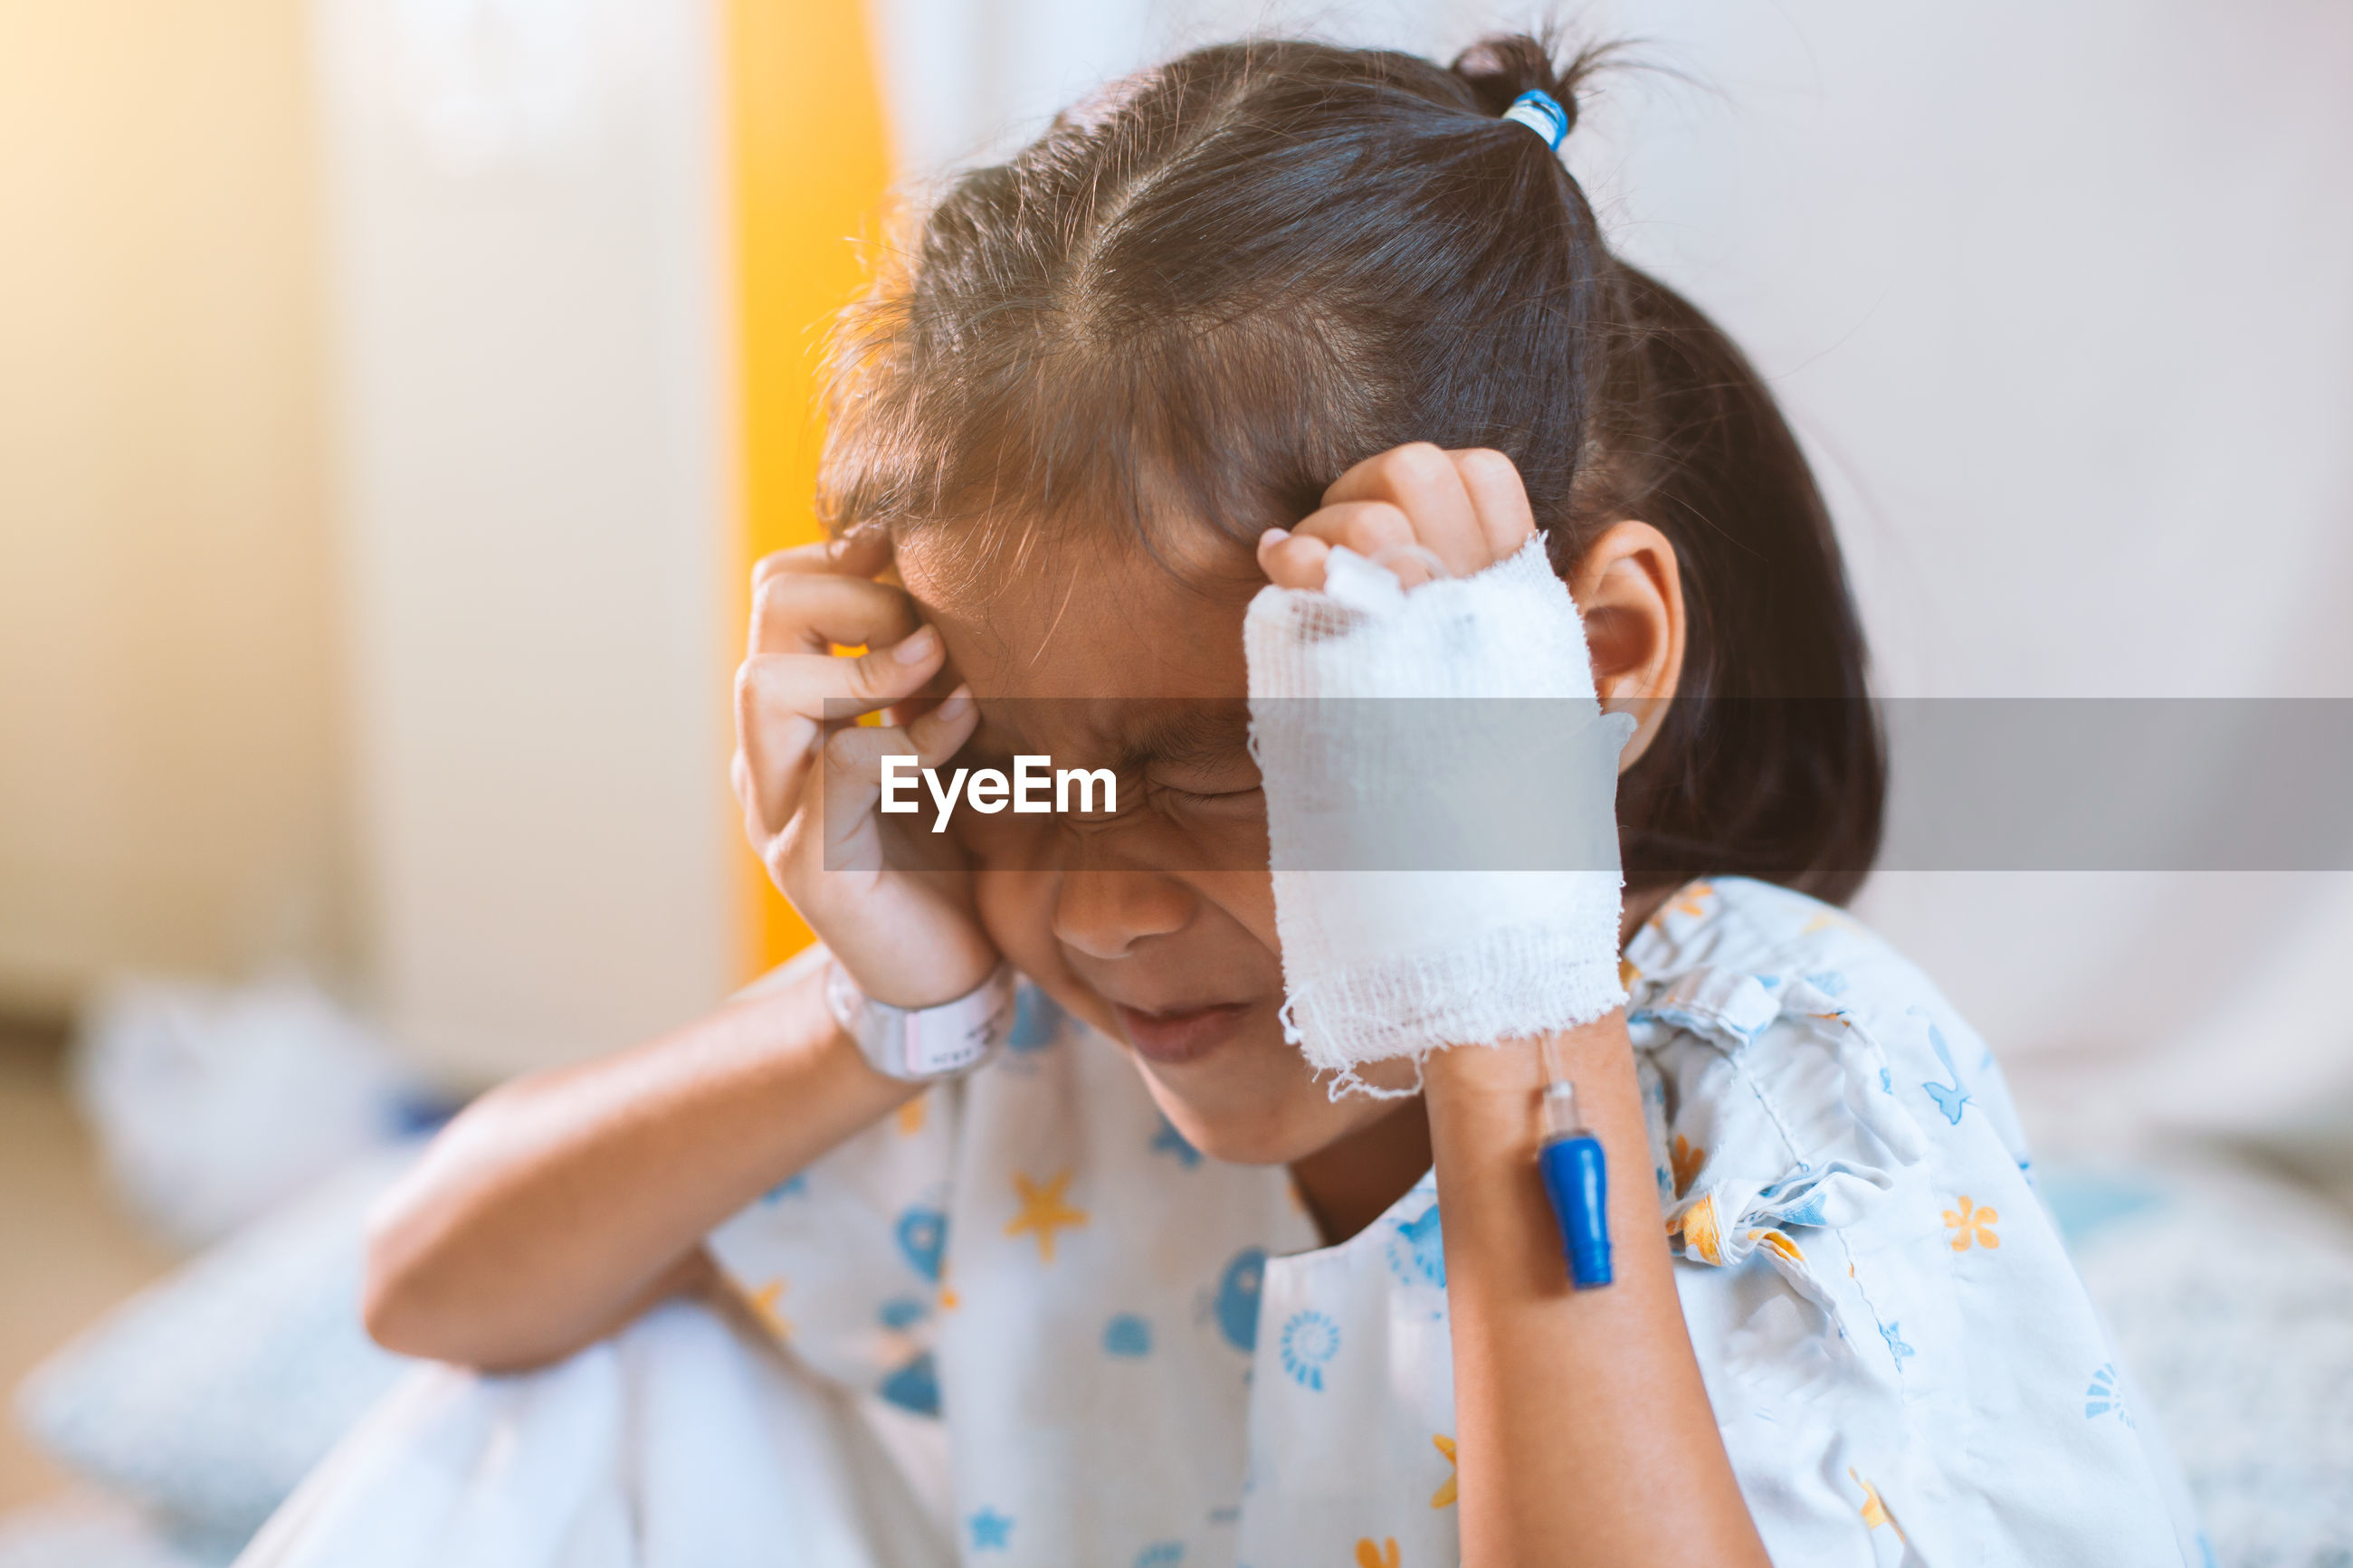 Close-up of girl with headache sitting in hospital